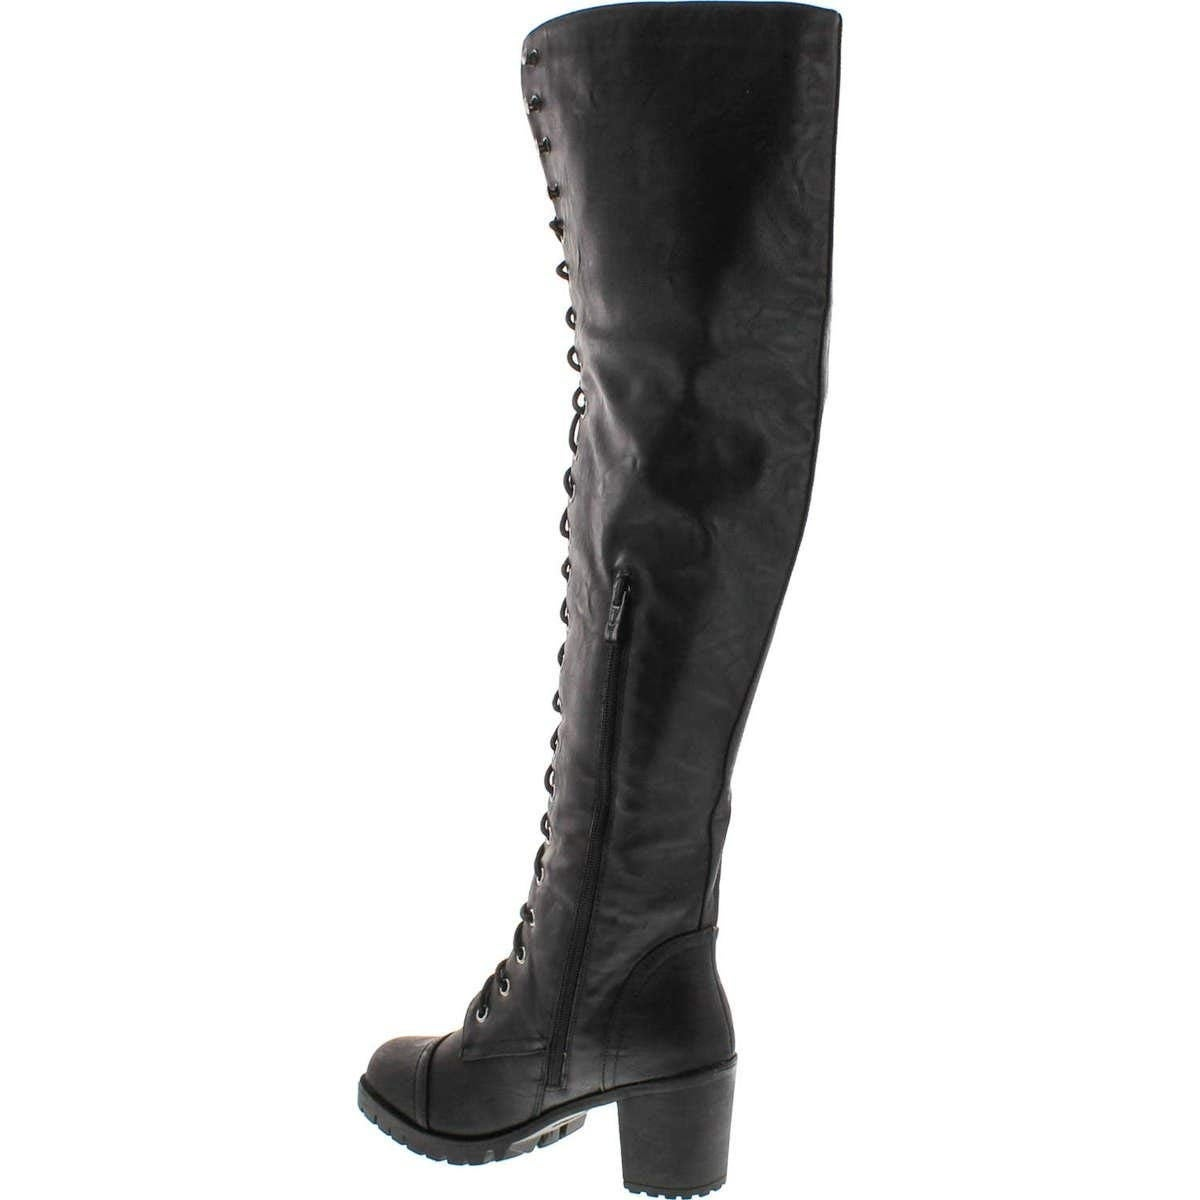 9f29916543b Shop Shoe Dezigns Illusion 01 Ok Womens Thigh High Lace up Chunk Heel  Combat Boots - 11 - Free Shipping On Orders Over  45 - Overstock - 25442944